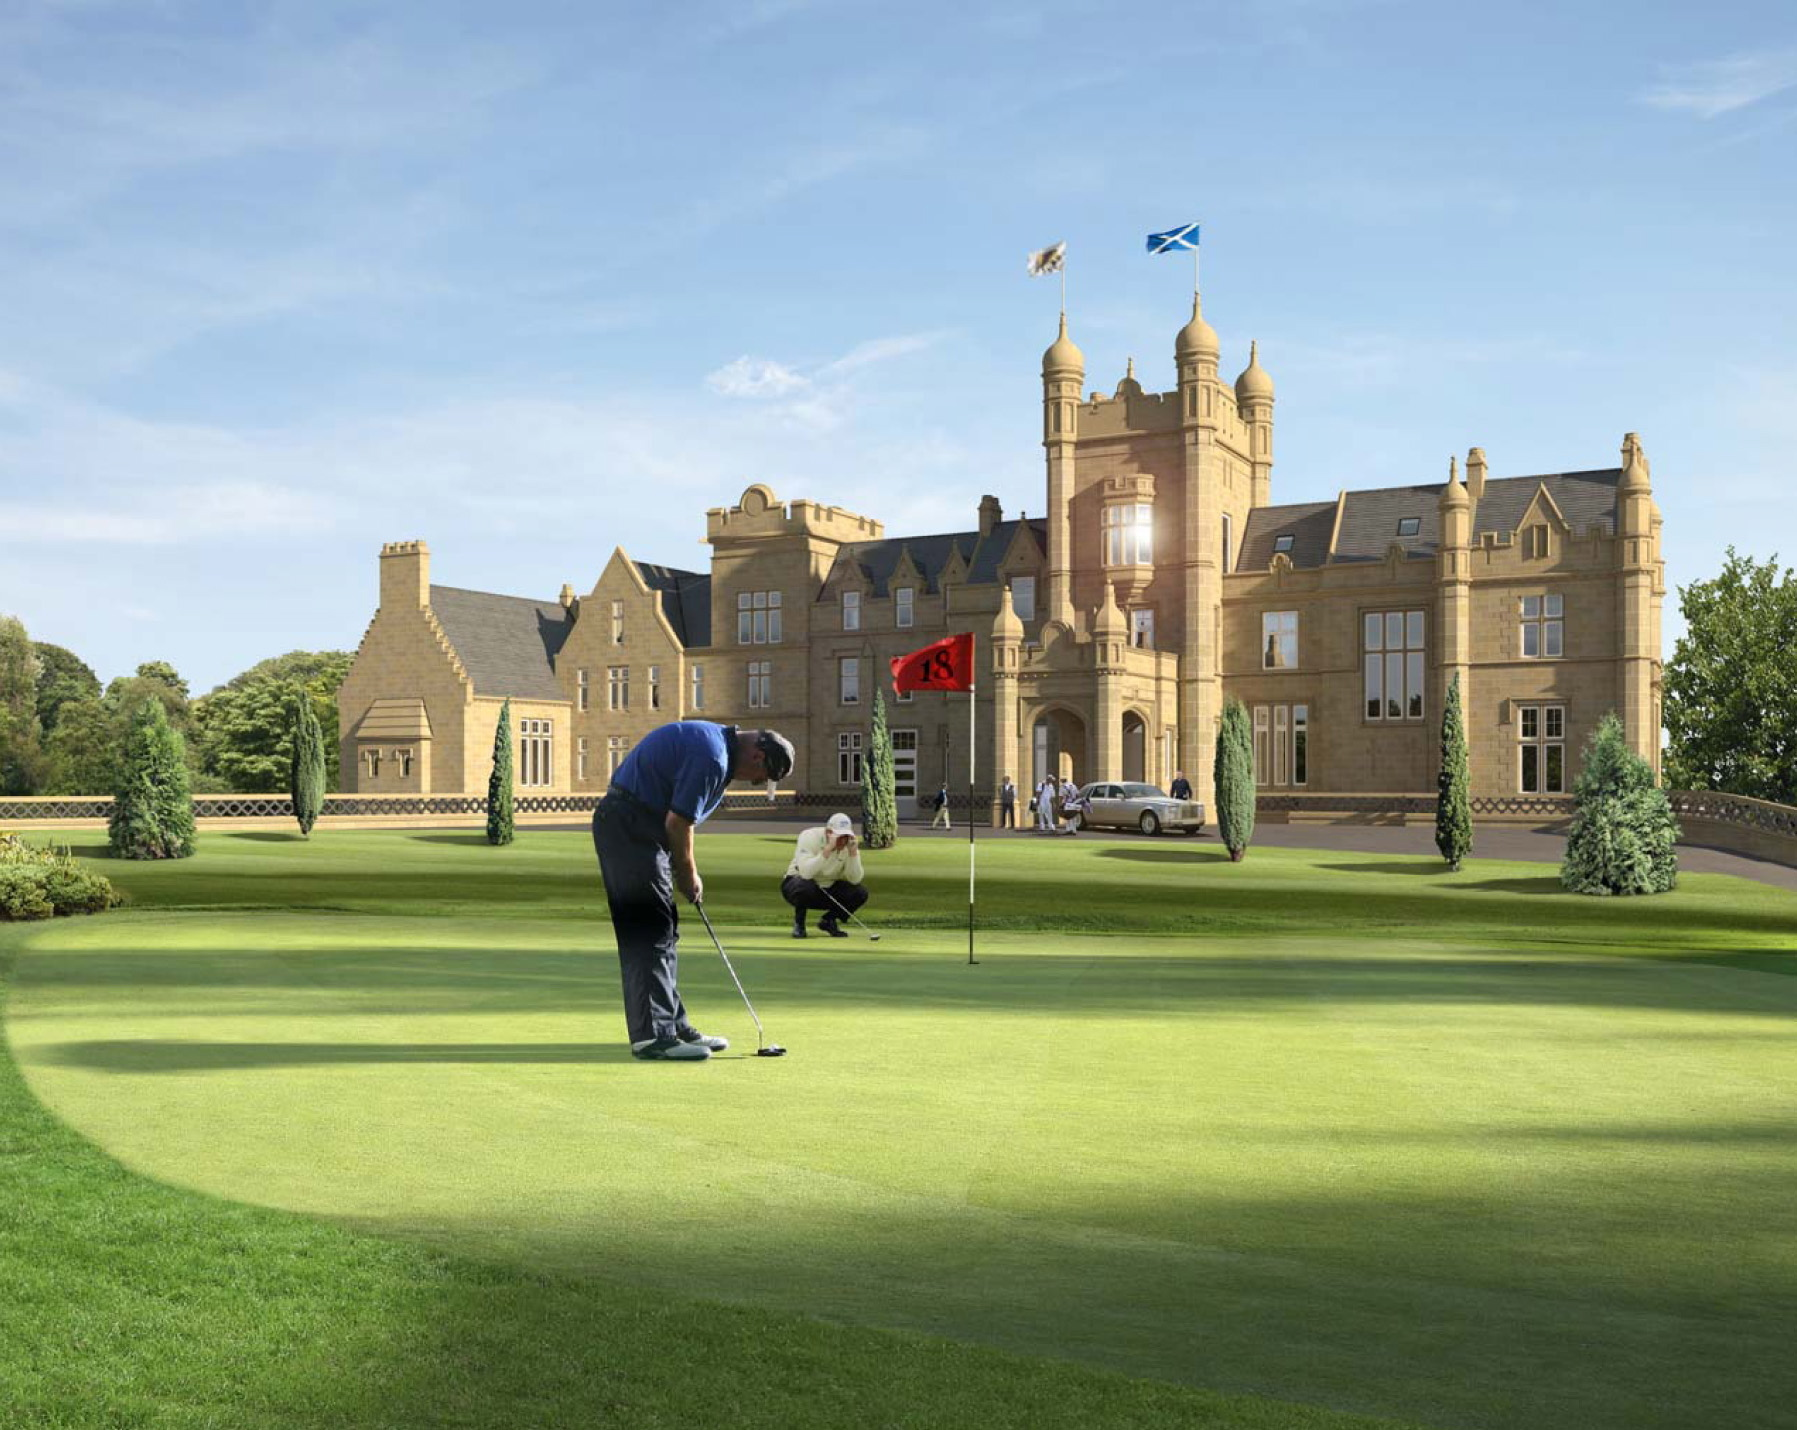 An artist's impression of how the Jack Nicklaus golf course could look, with Ury House in the background.